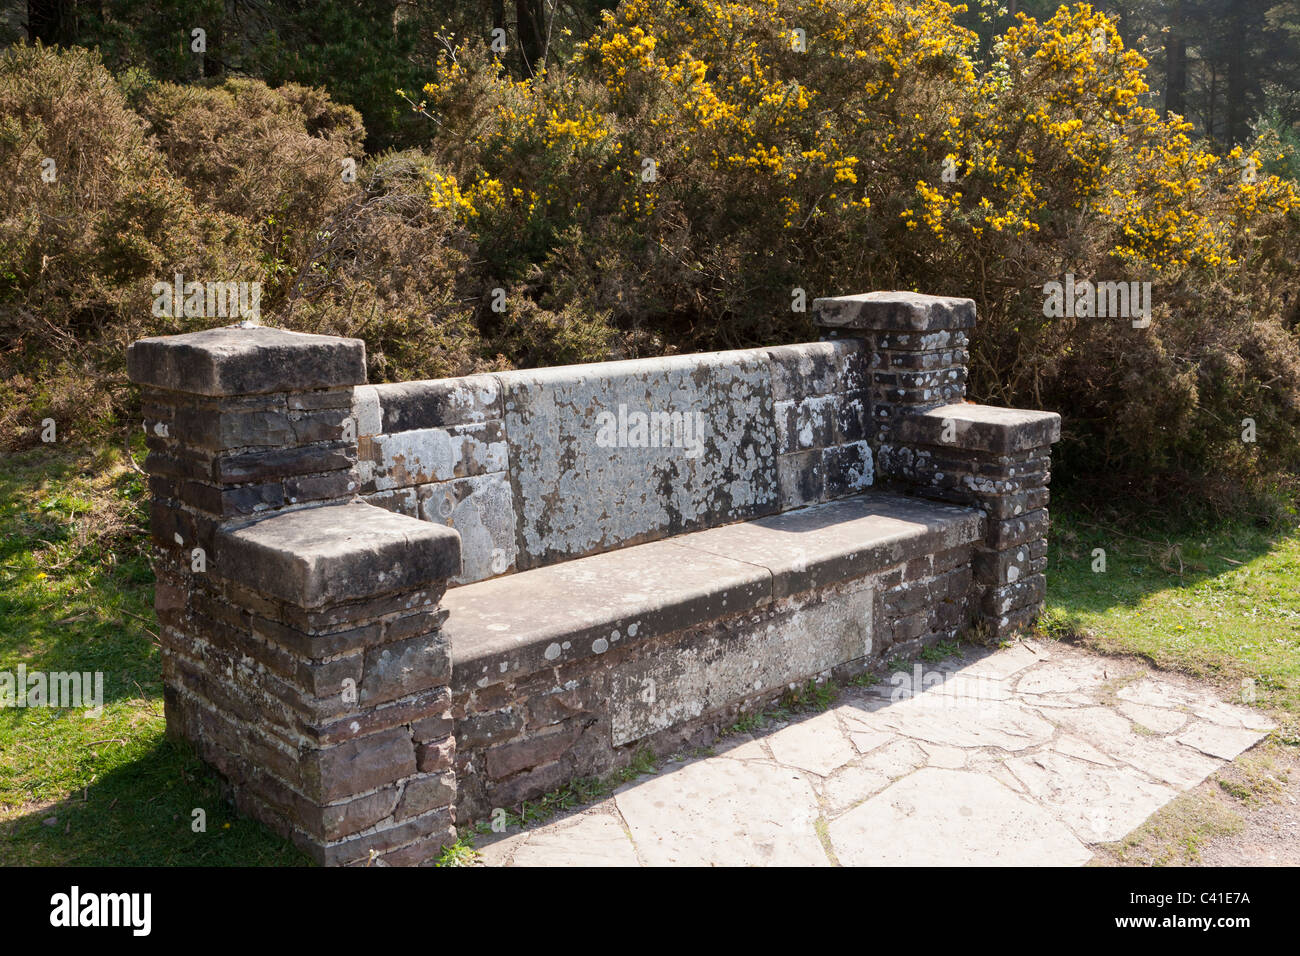 A stone seat viewpoint on the Webbers Post Easy Access Trail on Exmoor, Somerset, England UK - Stock Image